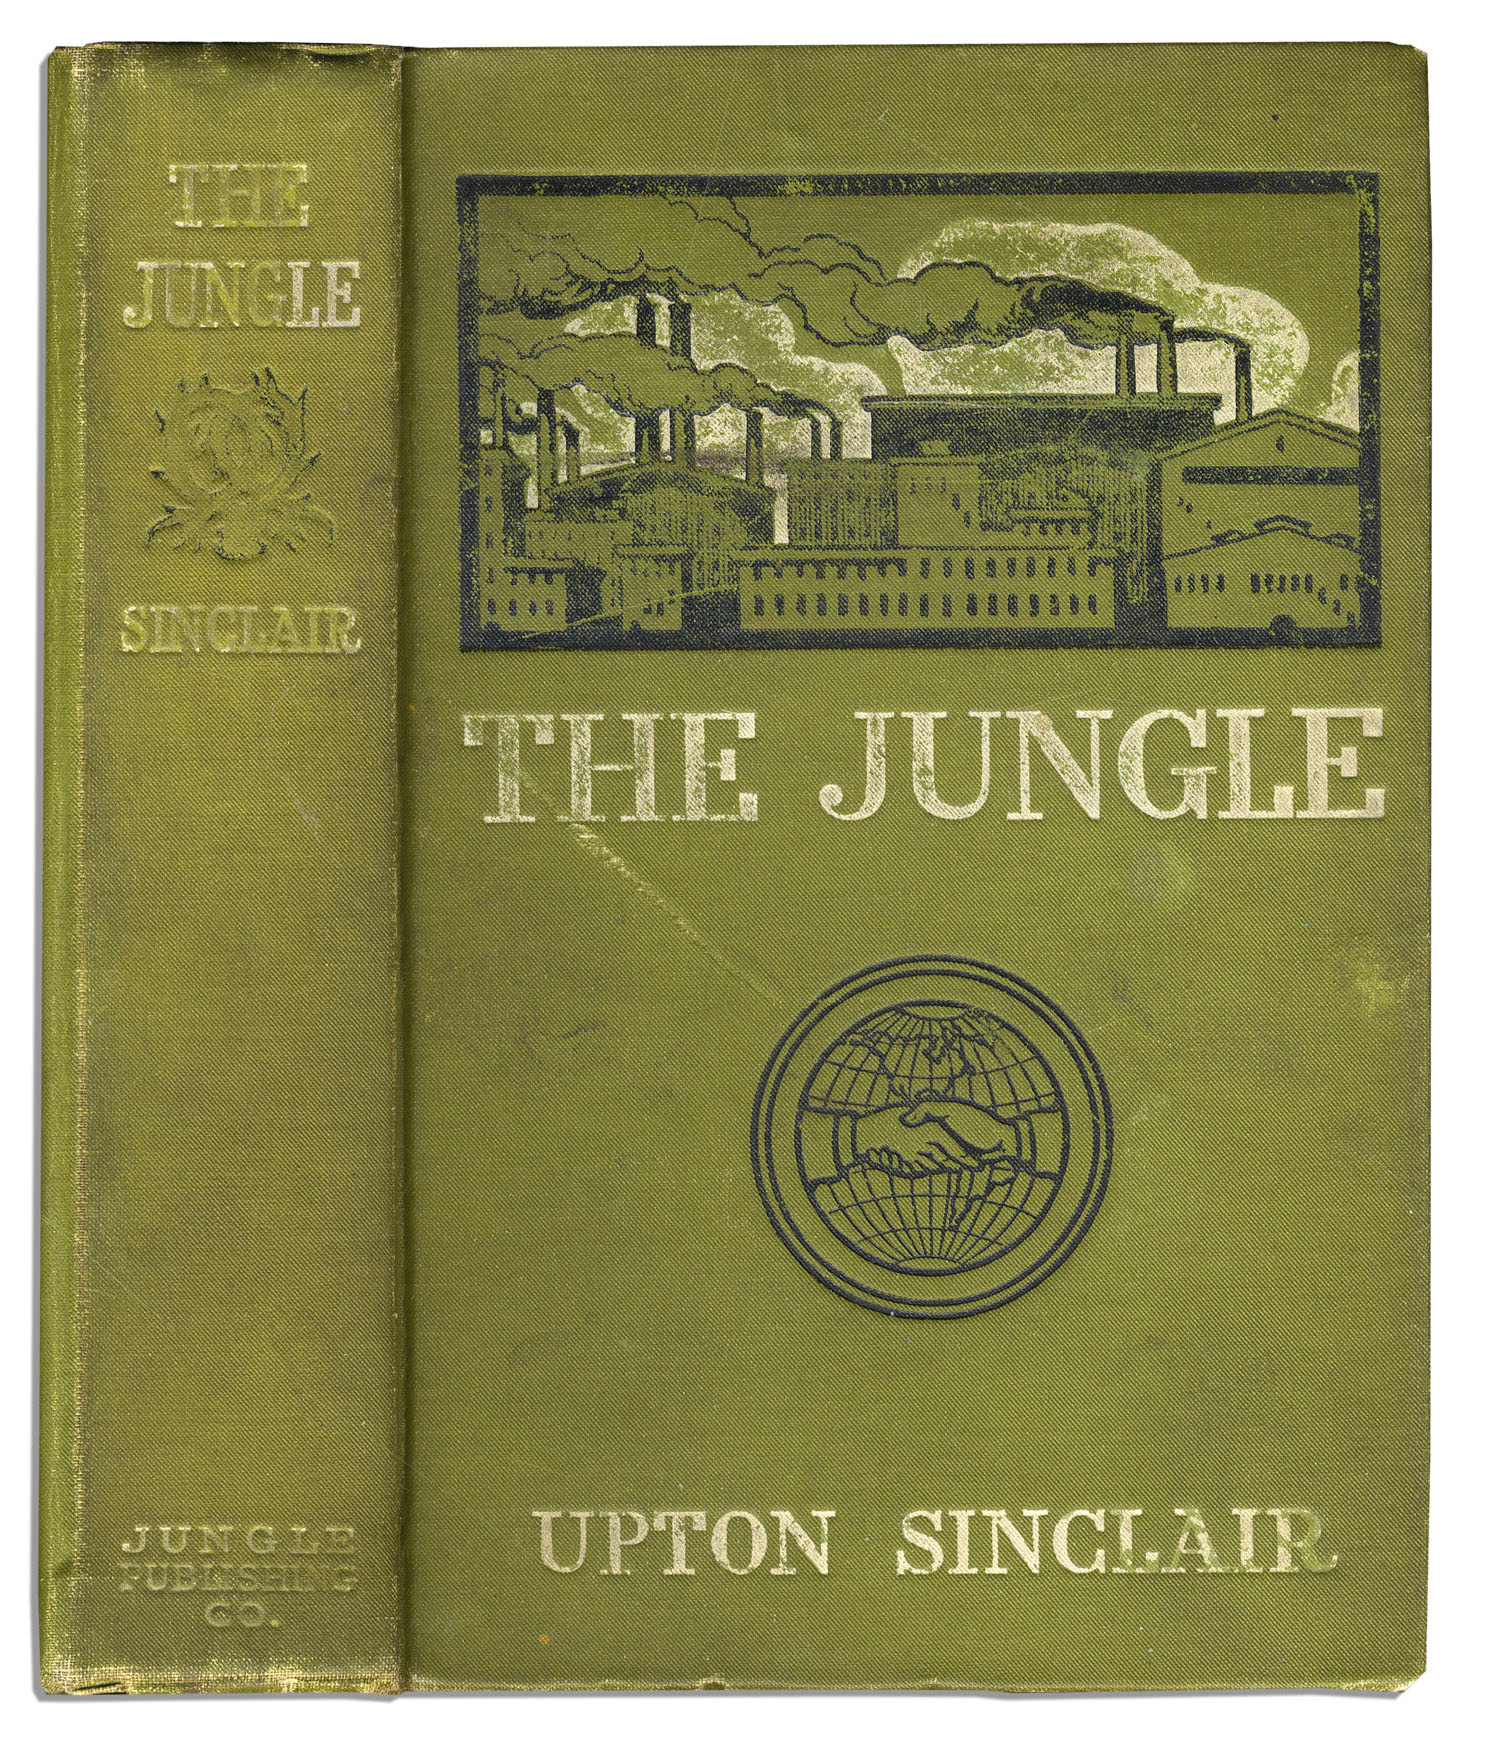 an analysis of the book of upton sinclair The jungle is a novel written by upton sinclair that serves to highlight the difficulty of living in the social class during the early twentieth century read this study guide to learn more about the characters and themes in the novel.